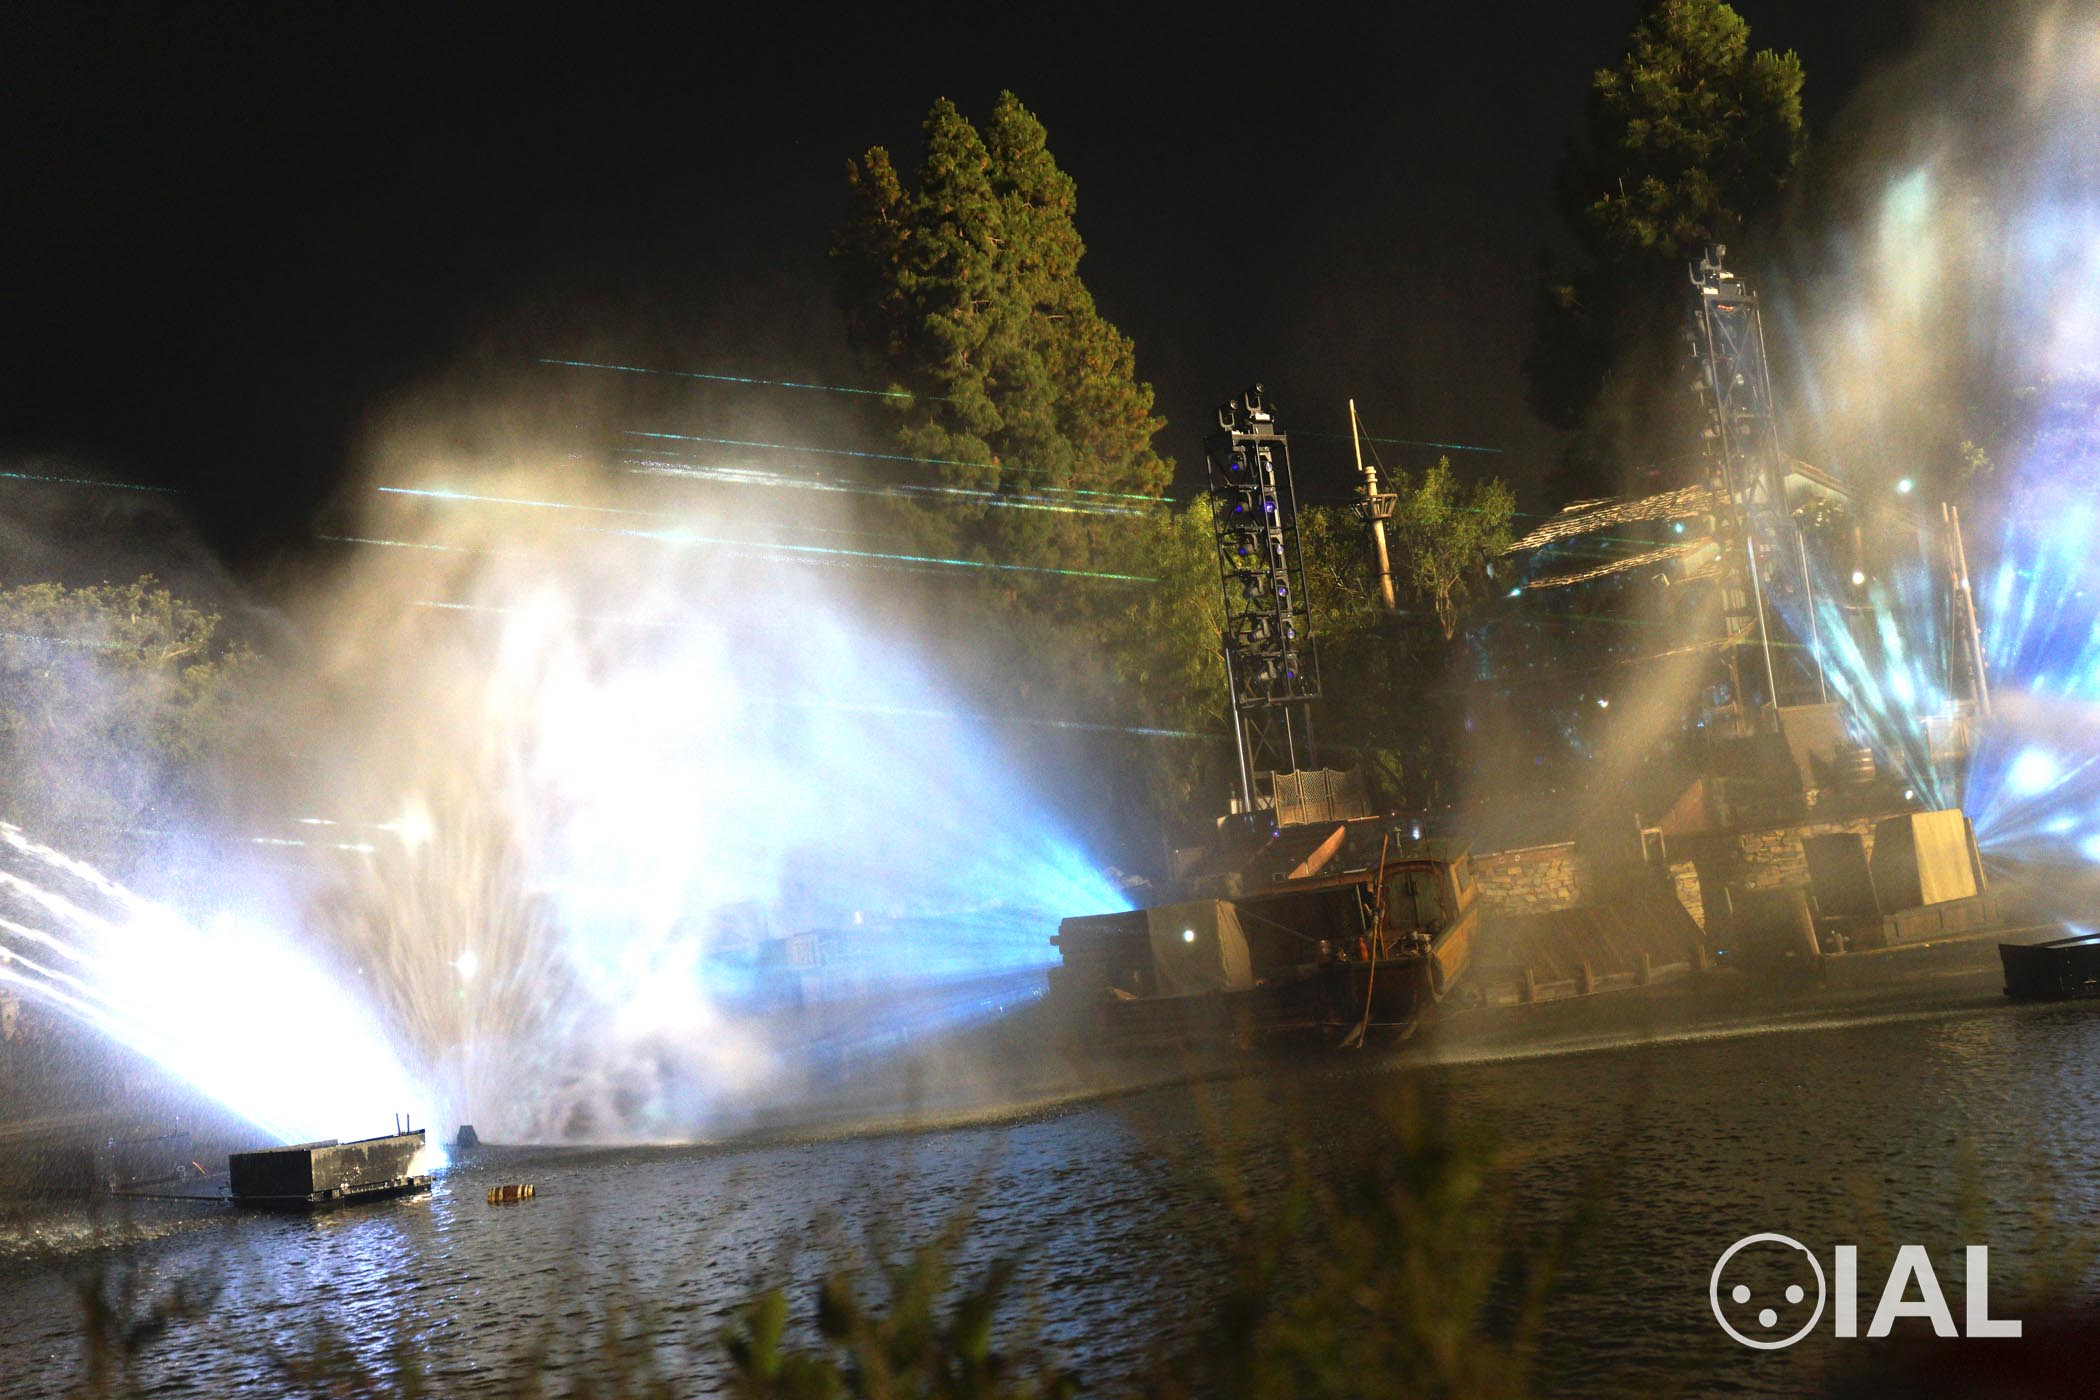 Pictured are Robe MMX WashBeams and BMFL WashBeams on two masts at Fantasmic